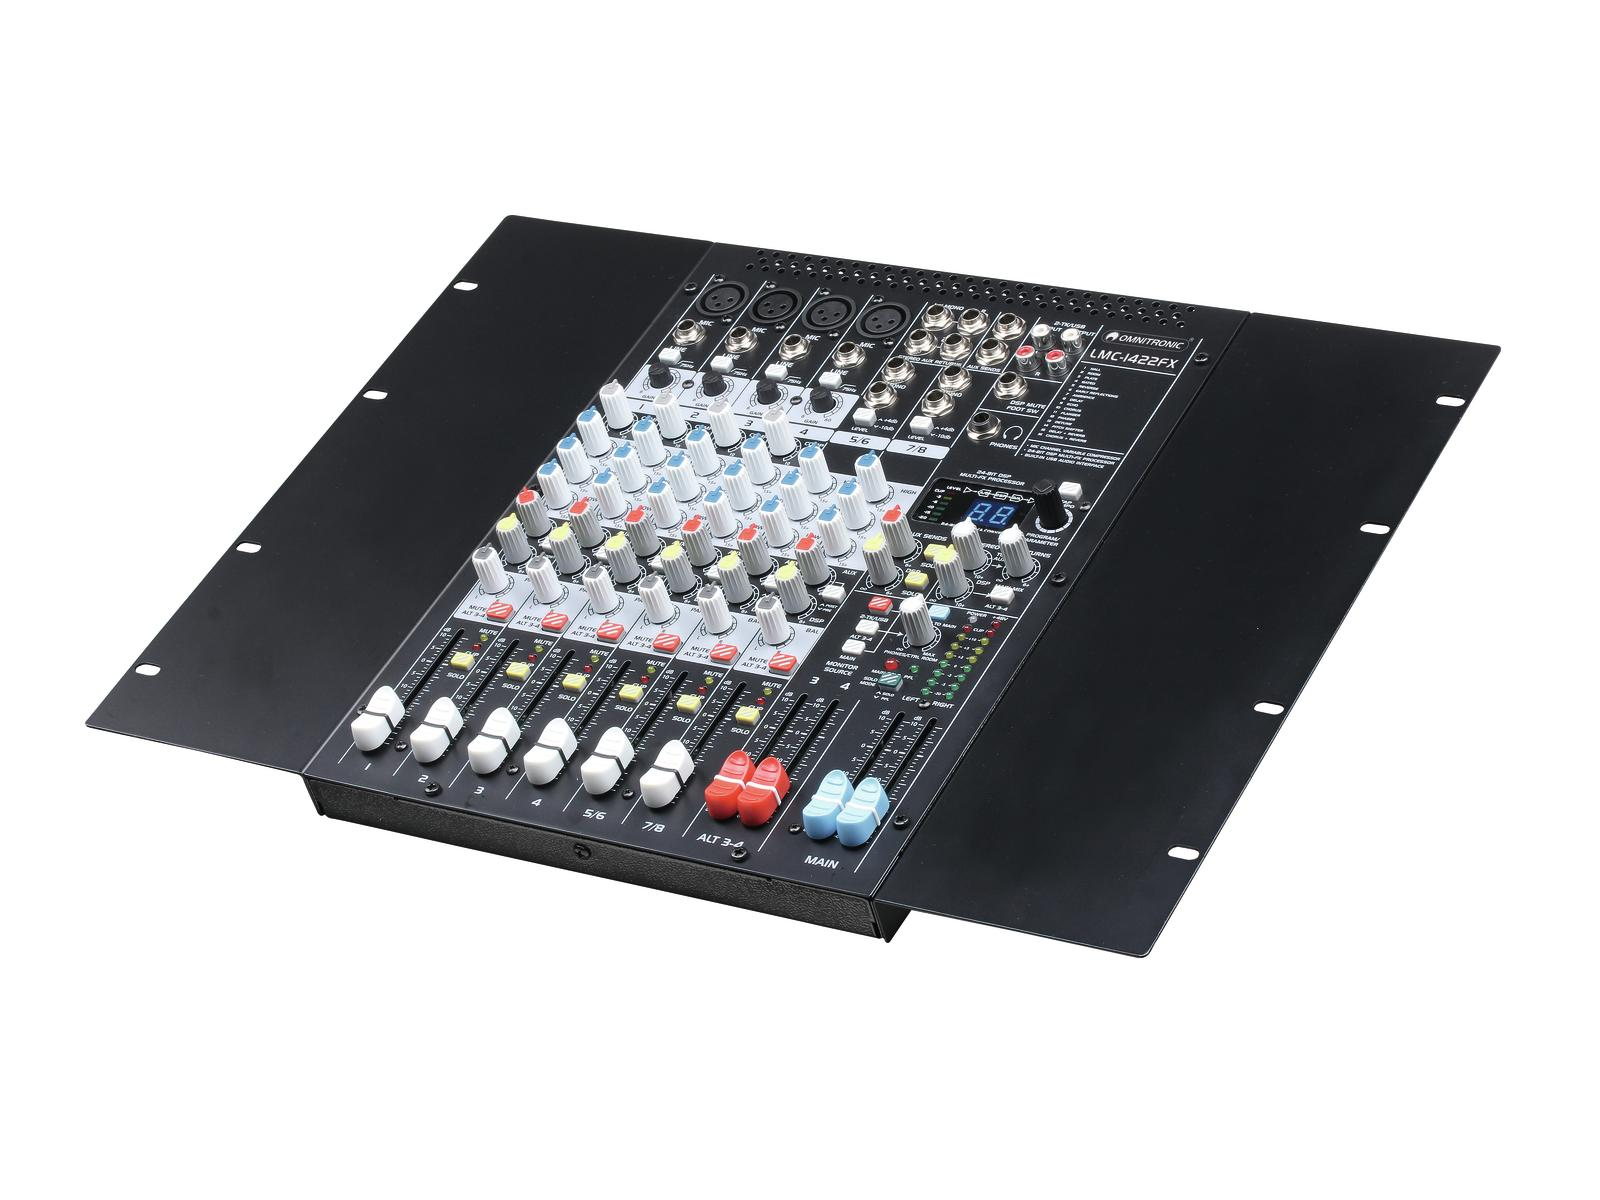 Mixer console dj usb-pc mac 8 channels OMNITRONIC LMC-1422FX